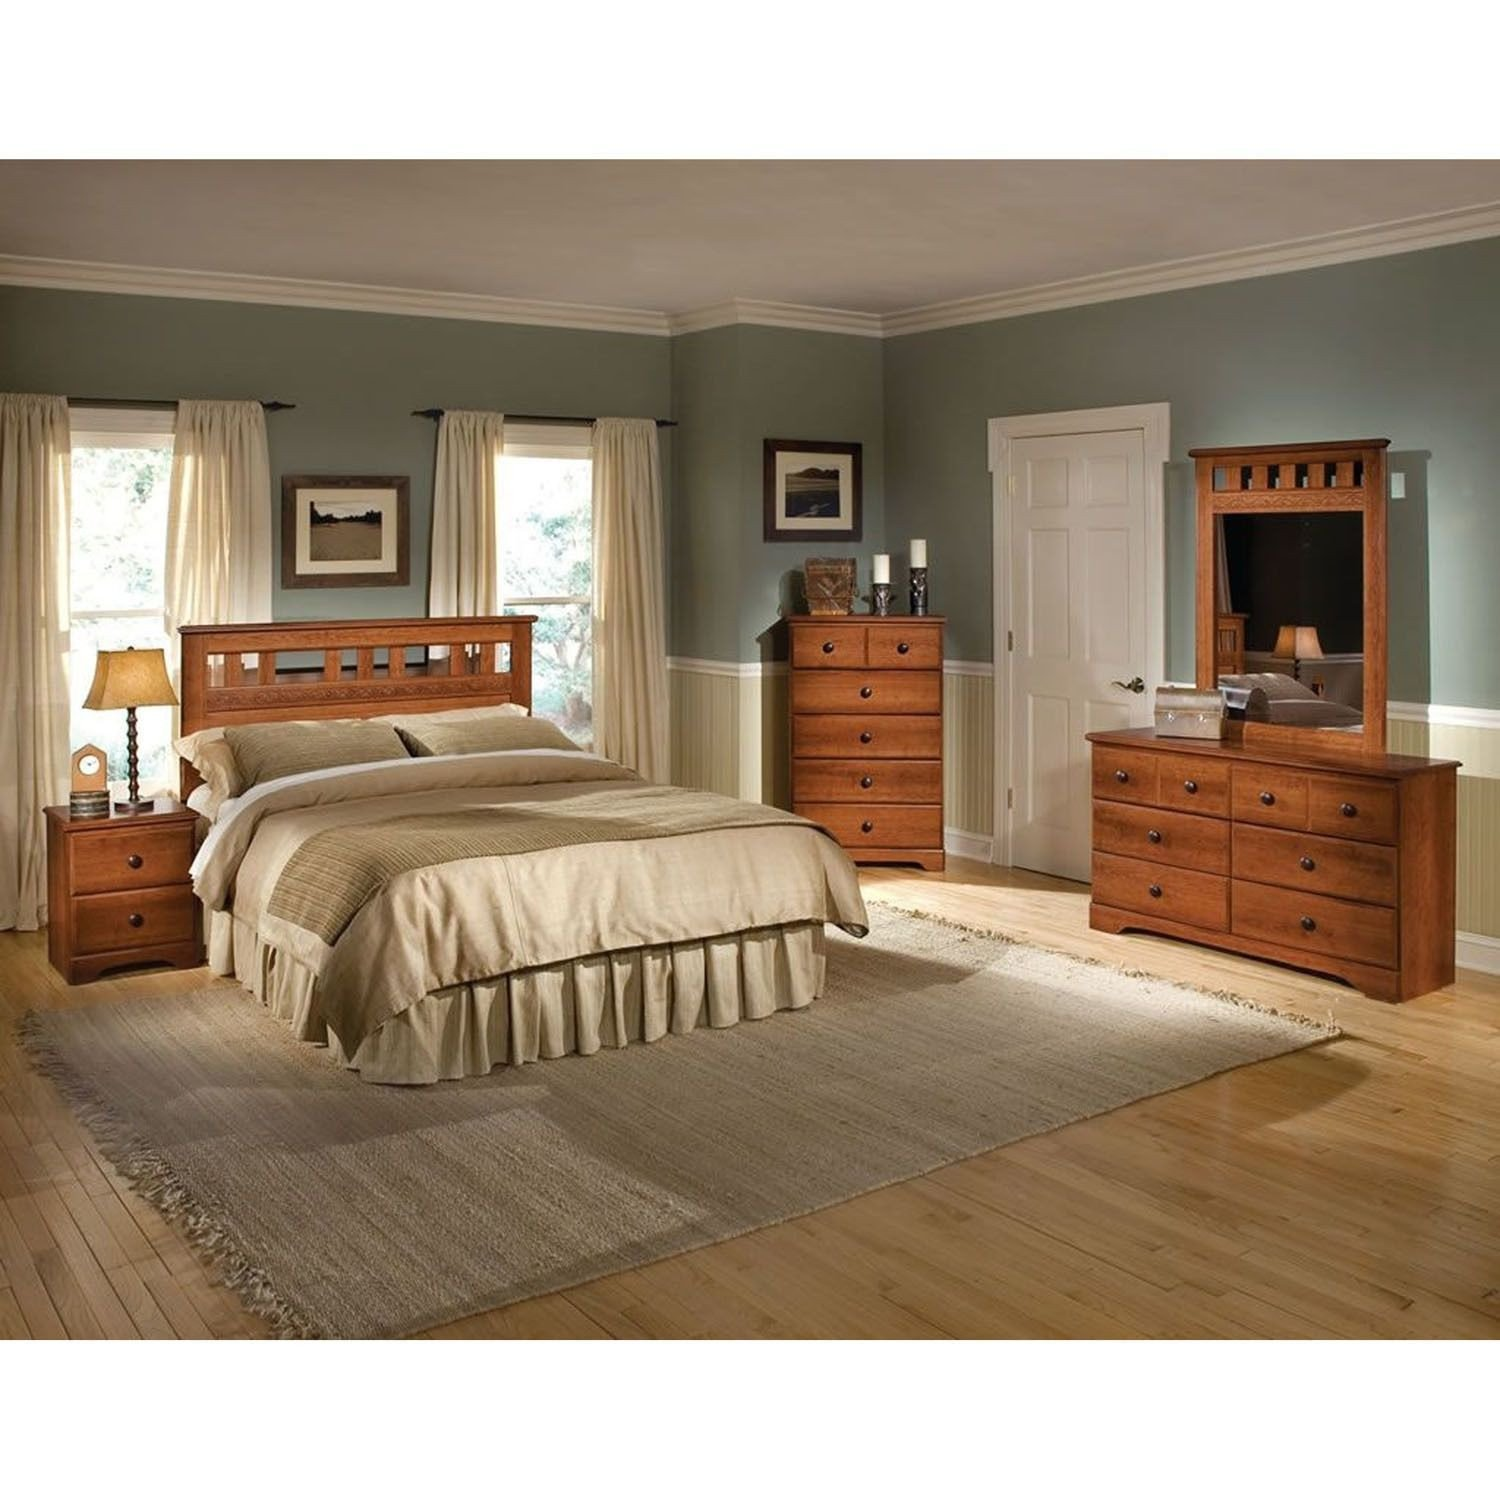 Light Wood Bedroom Furniture Elegant Cambridge Seasons Five Piece Bedroom Suite Queen Bed